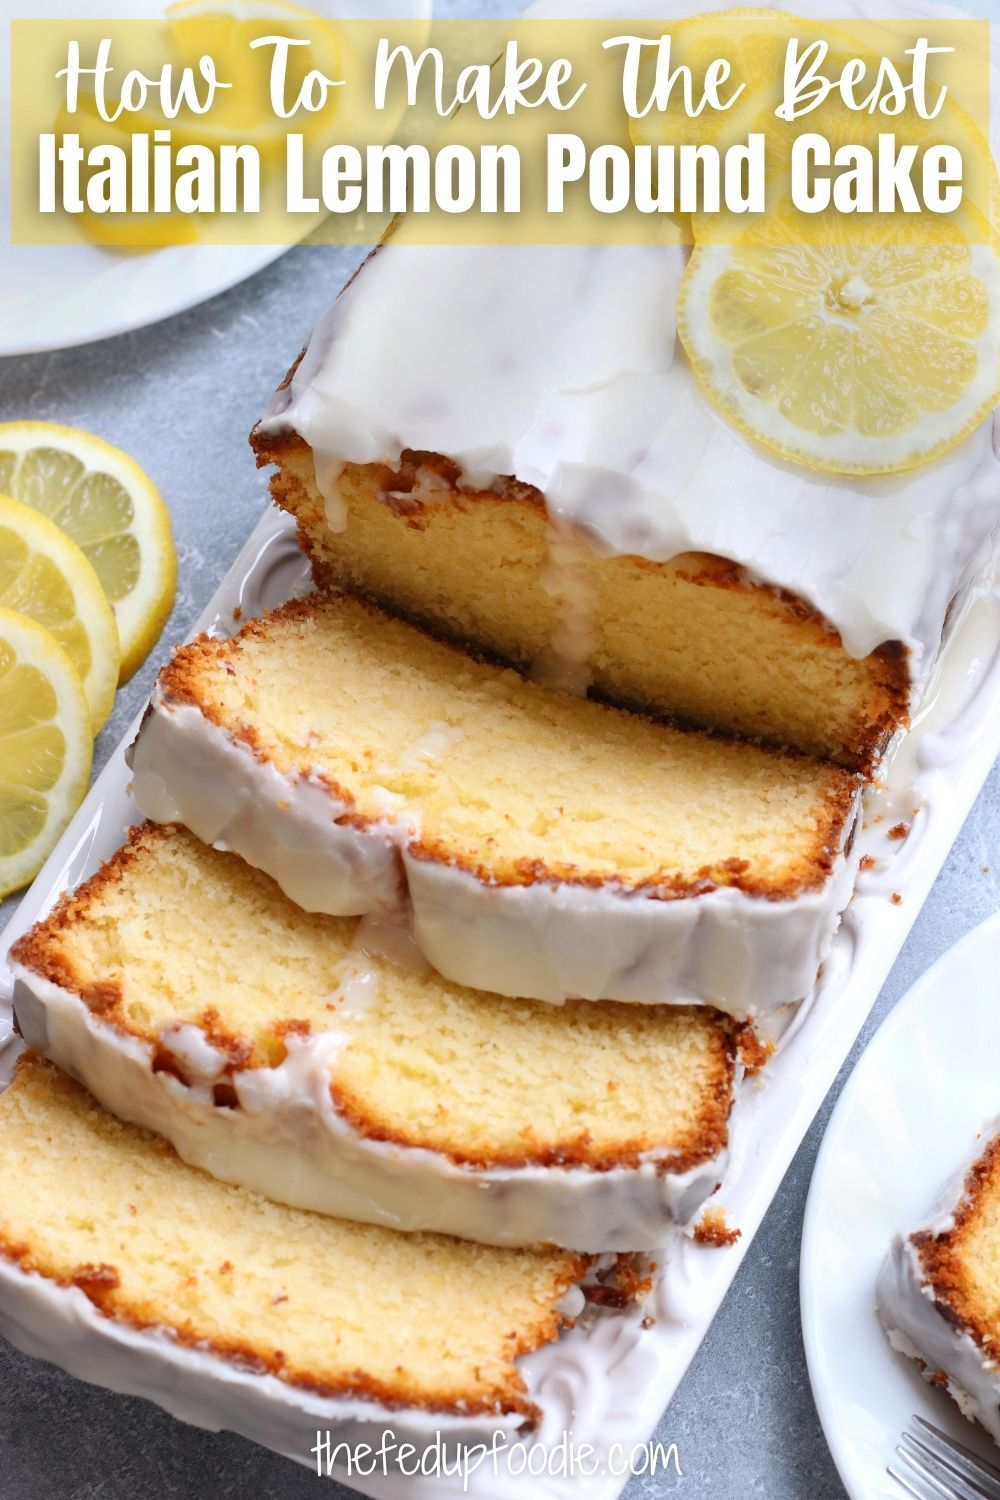 Bright and fresh, this Italian Lemon Pound Cake recipe is a soft and fluffy Italian classic. Made with oil rather than butter and very easy to make. With the delicious lemon glaze this dessert turns out 100% better than Starbucks lemon Loaf. #ItalianLemonPoundCake #ItalianLemonCake #ItalianLemonPoundCakeRecipe #ItalianLemonPoundCakeWithGlaze #ItalianLemonPoundCakeEasy #ItalianLemonPoundCakeWithGlaze #LemonPoundCakeRecipeMoist #EasyLemonPoundCakeRecipe #LemonLoaf #LemonLoafCake